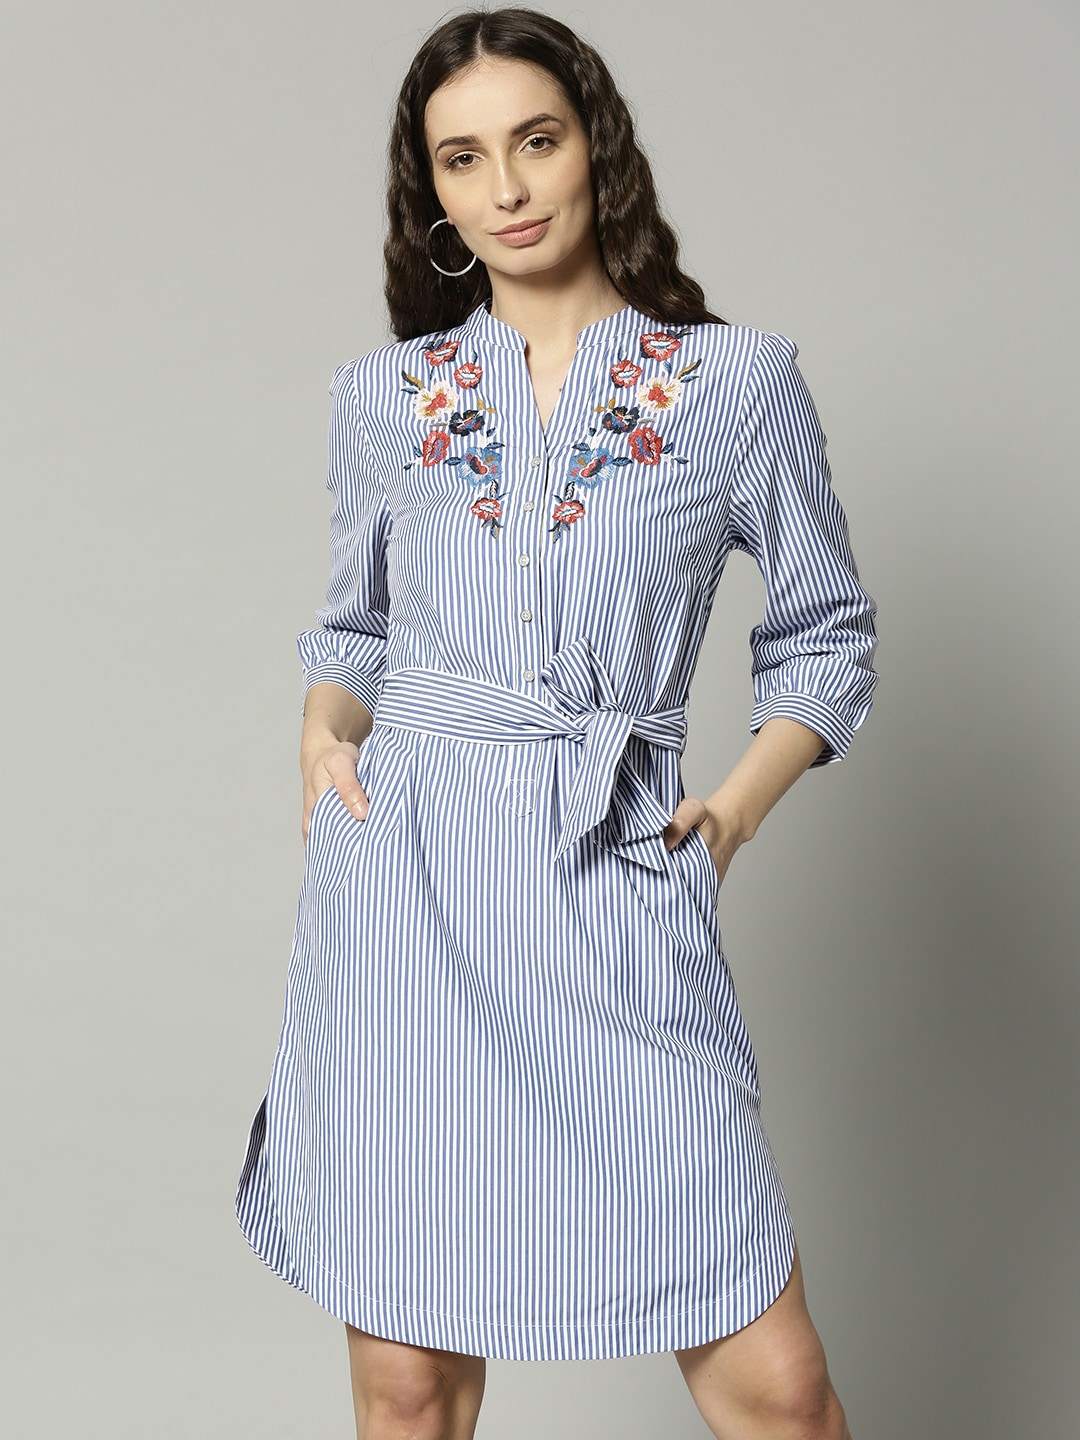 19ae885e69d Striped Dresses - Buy Striped Dresses online in India